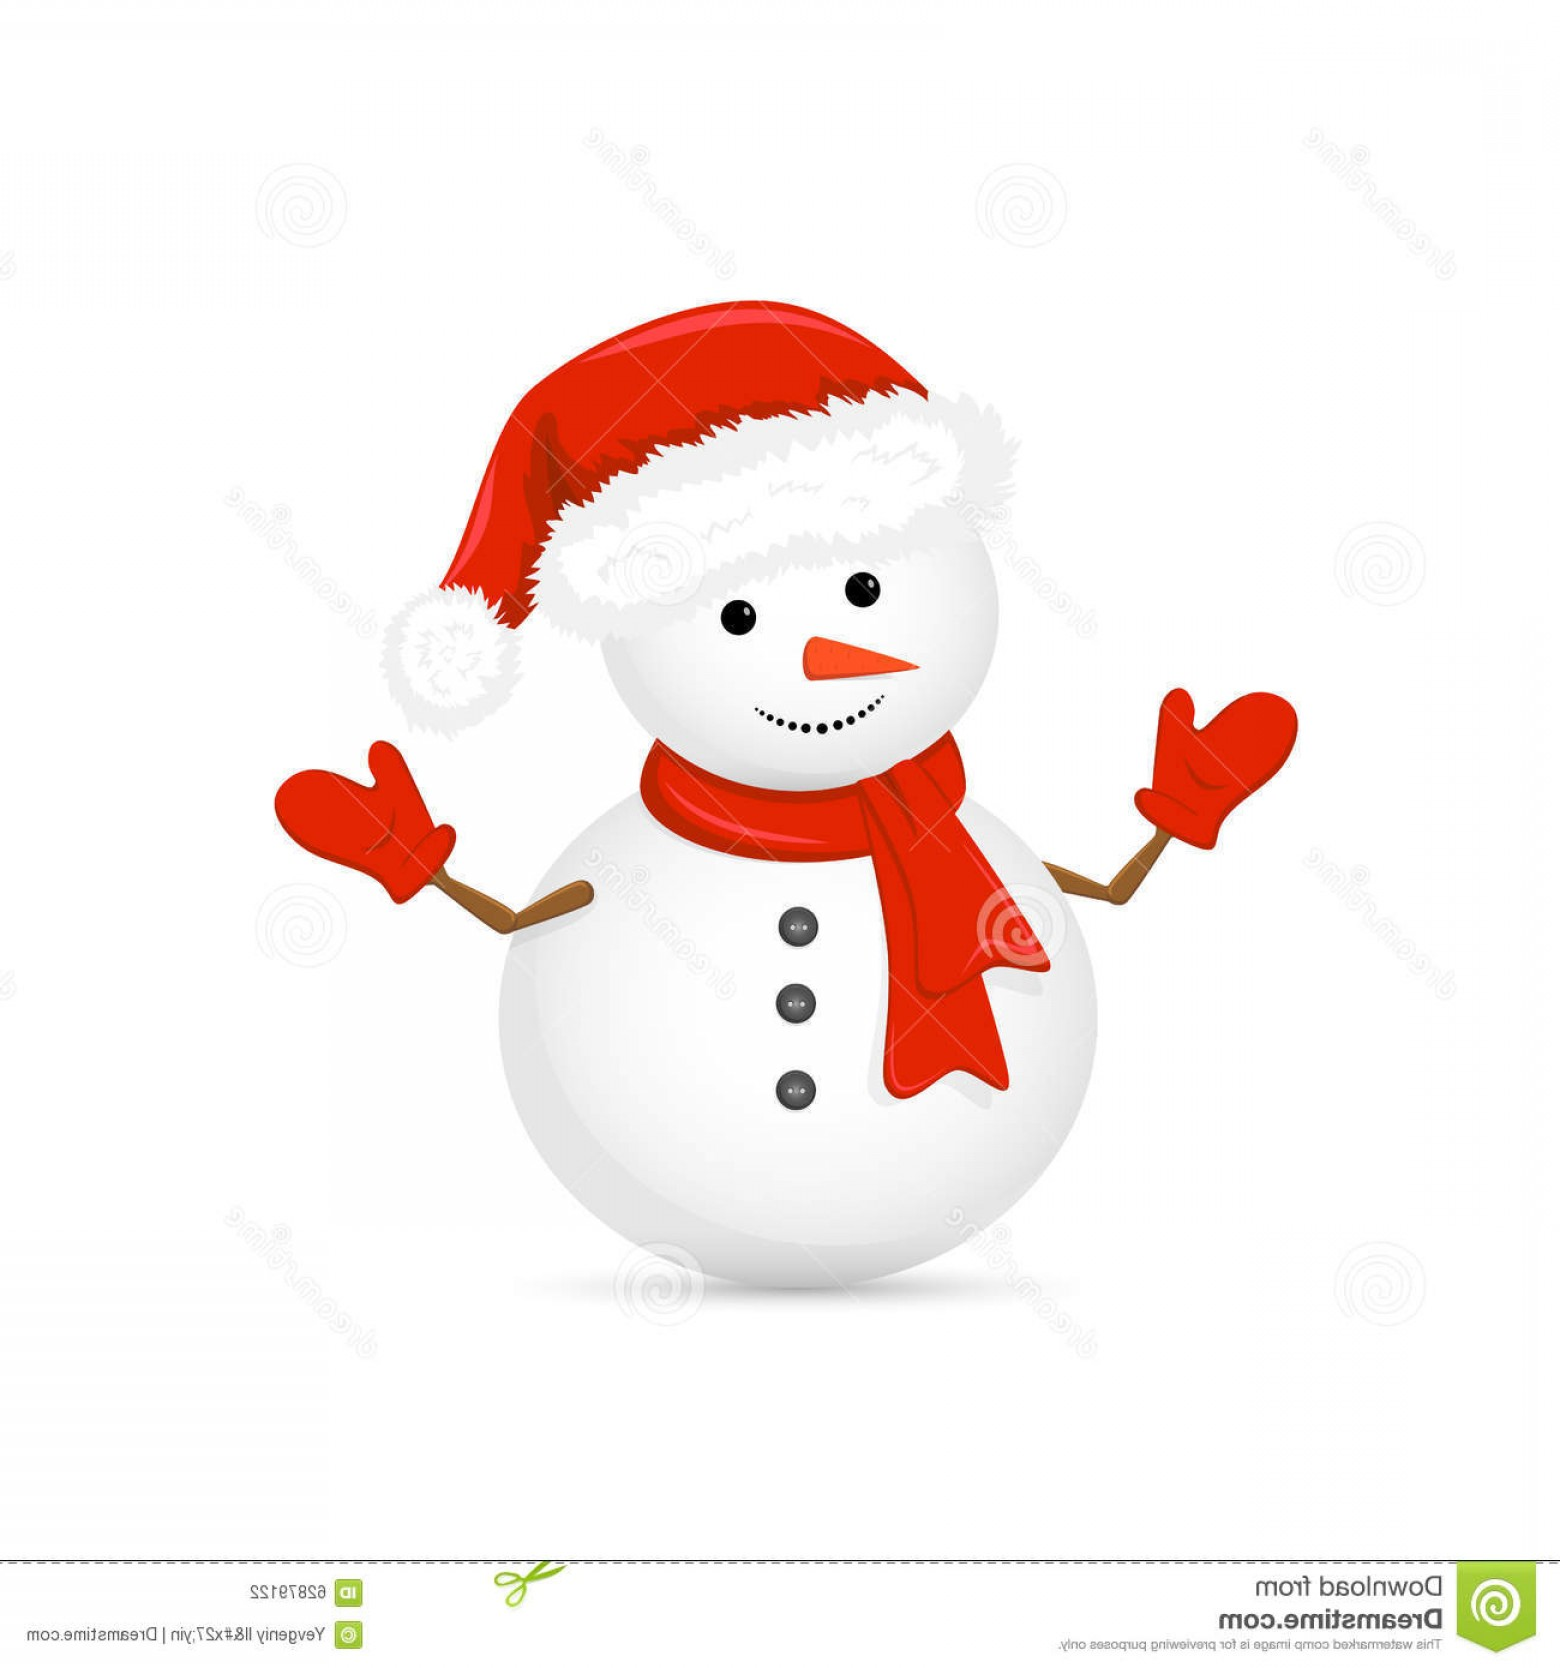 No Hat With Snowman Vector: Stock Illustration Snowman Santa Hat Red Scarf Christmas White Background Illustration Image